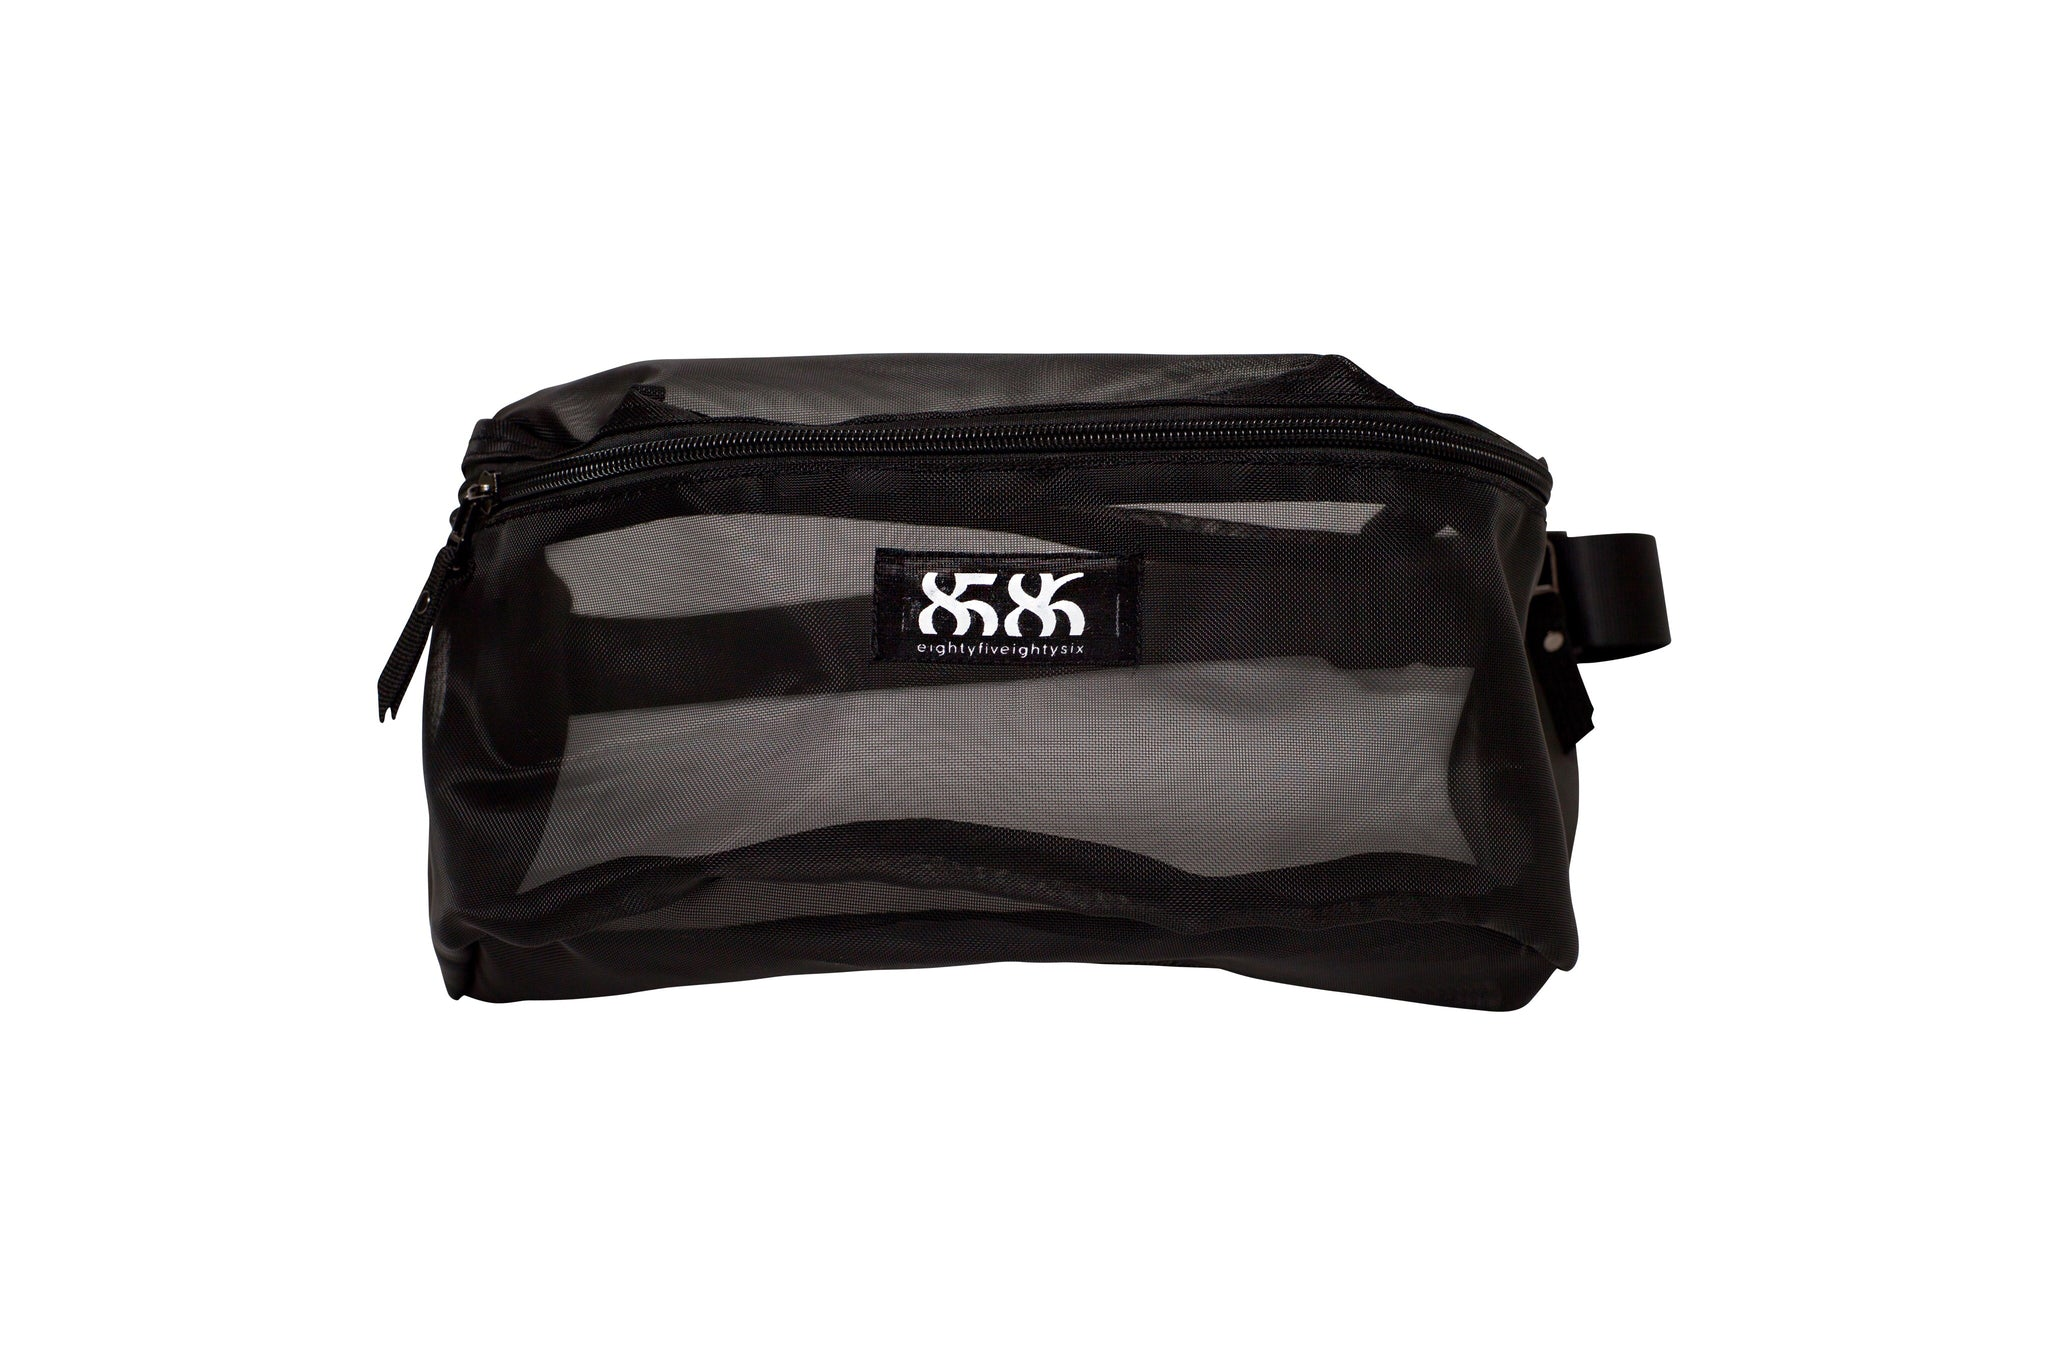 MESH FANNY PACK - 8586